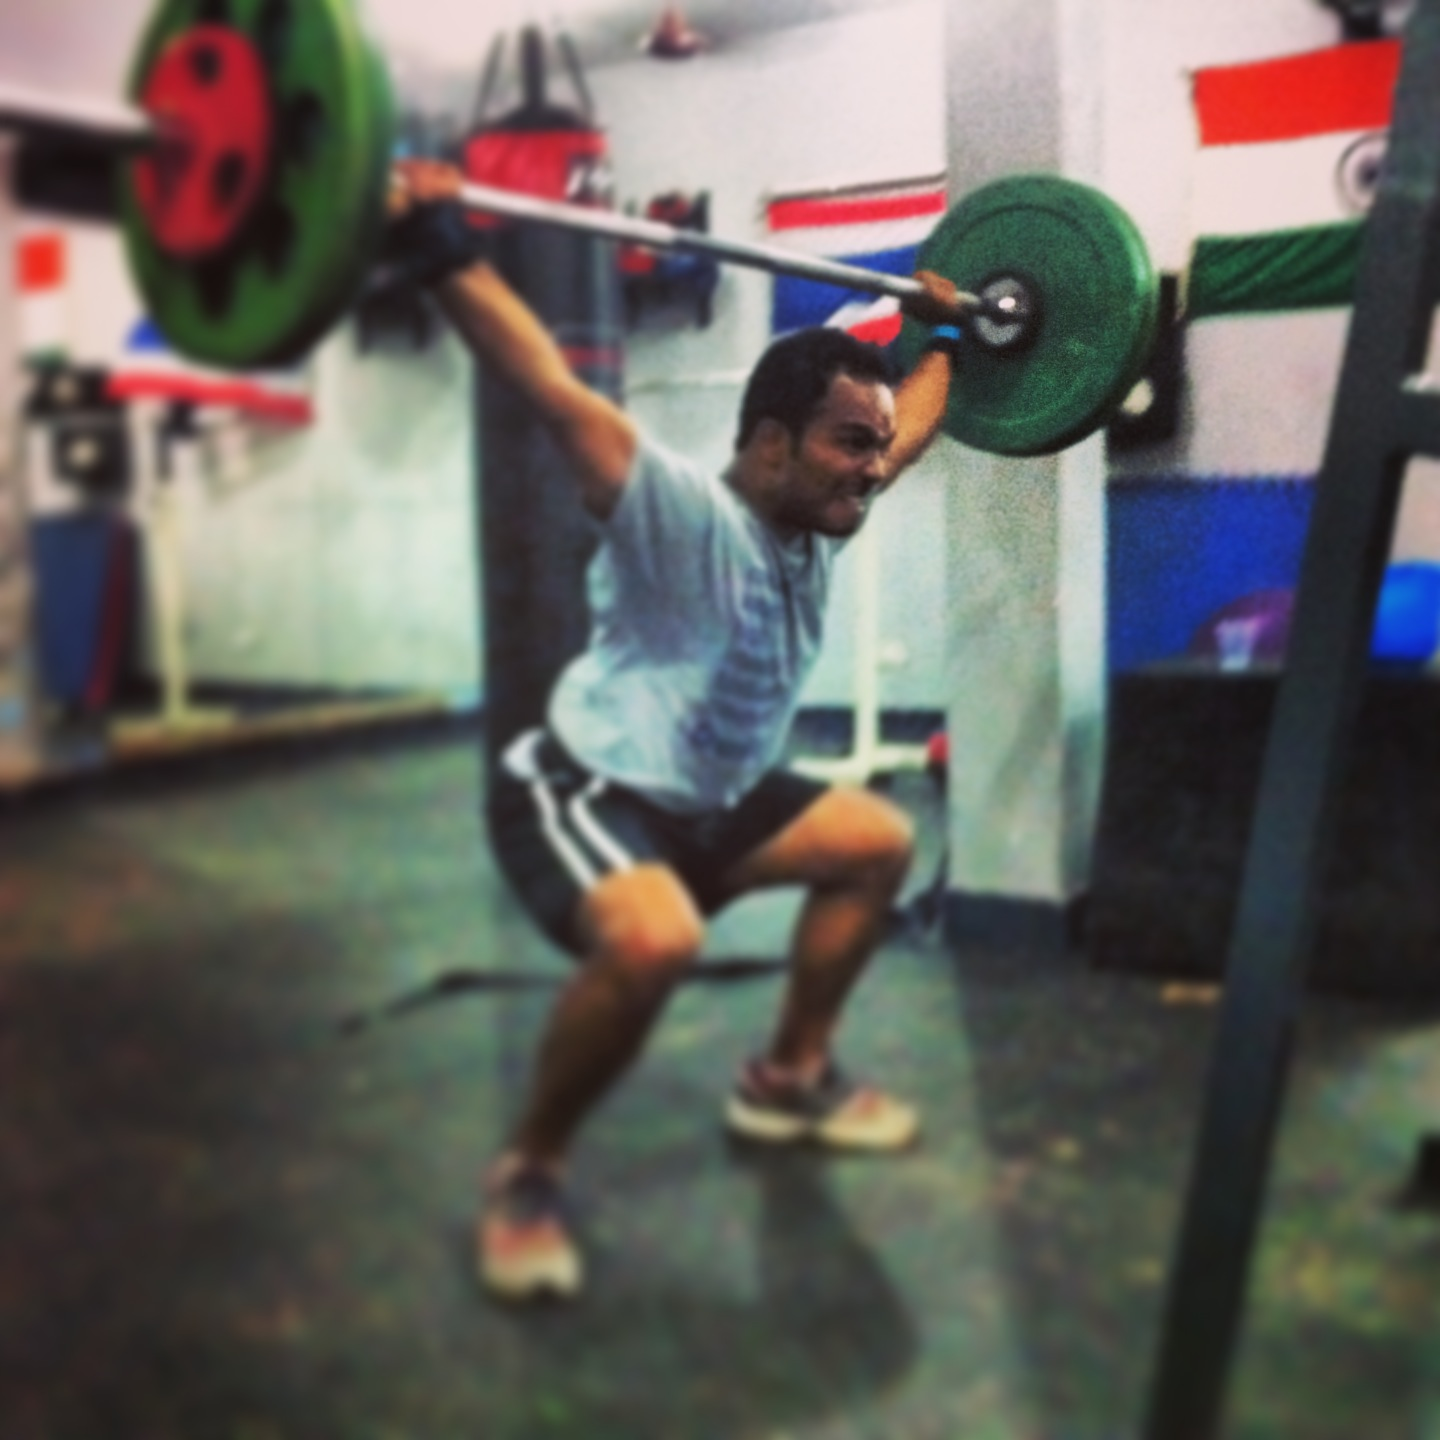 Coach Naveen made PR on Overhead Squats - 70kg